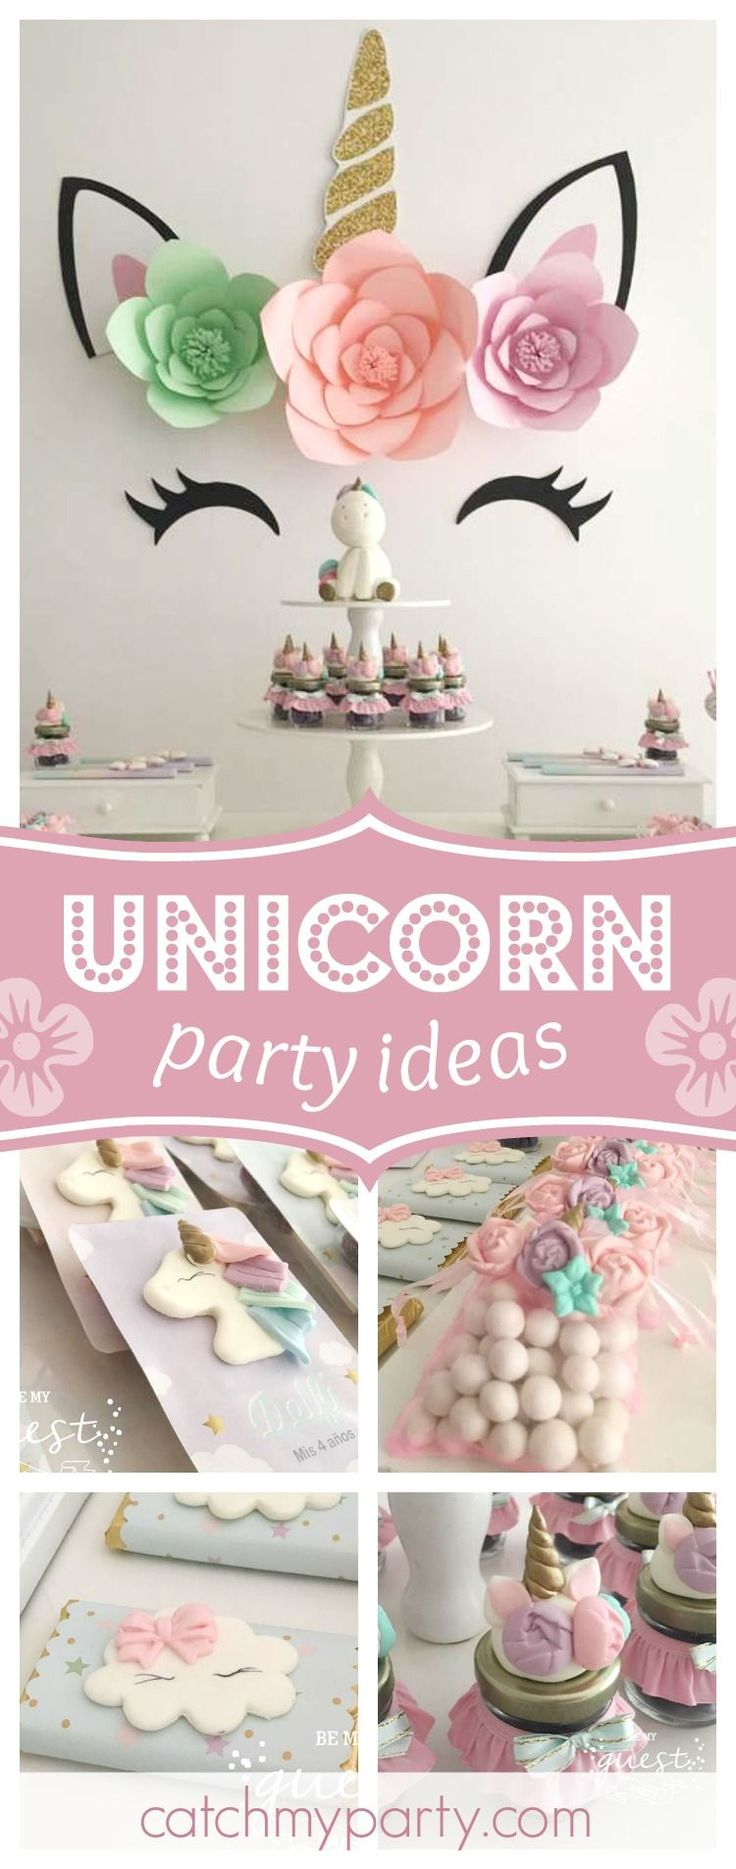 Swoon over this gorgeous unicorn birthday party! The backdrop is so pretty!! See more party ideas and share yours at CatchMyParty.com #catchmyparty #unicornbirthdayparty